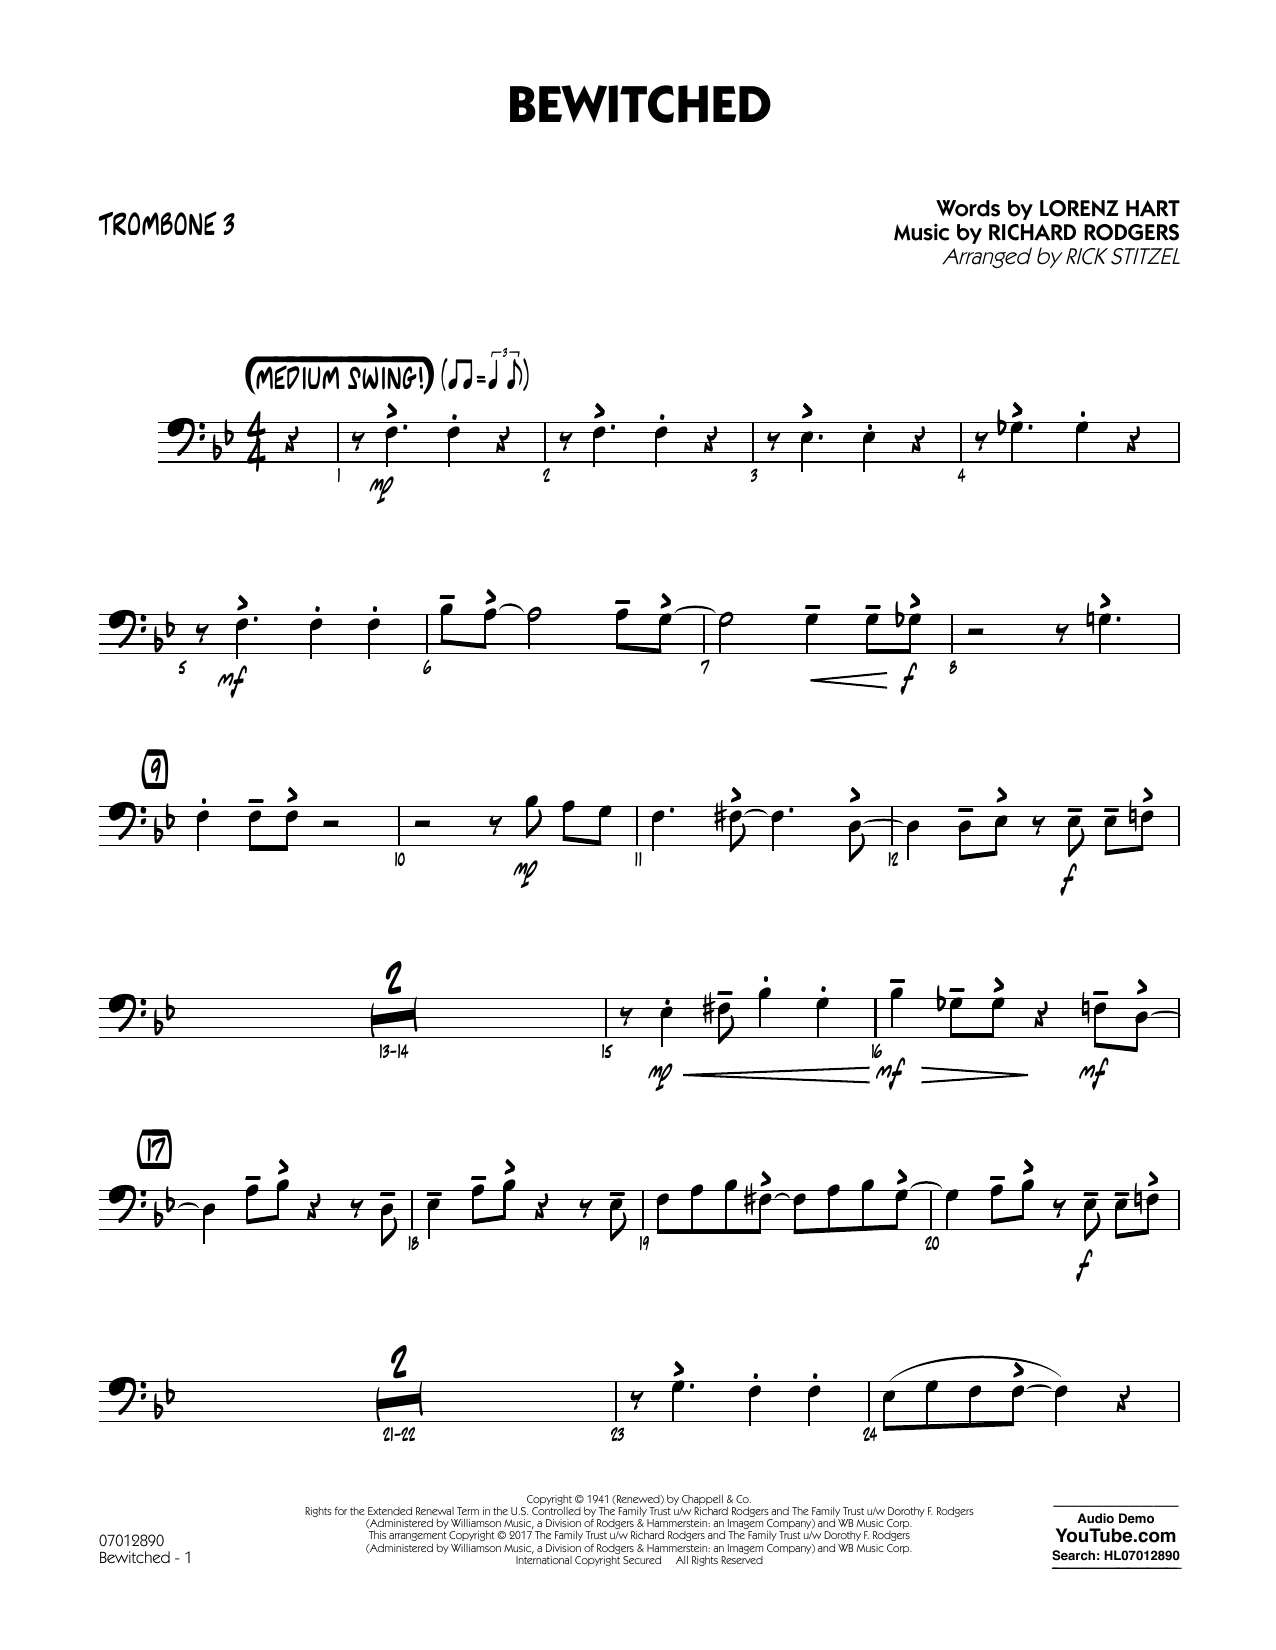 Bewitched - Trombone 3 Sheet Music